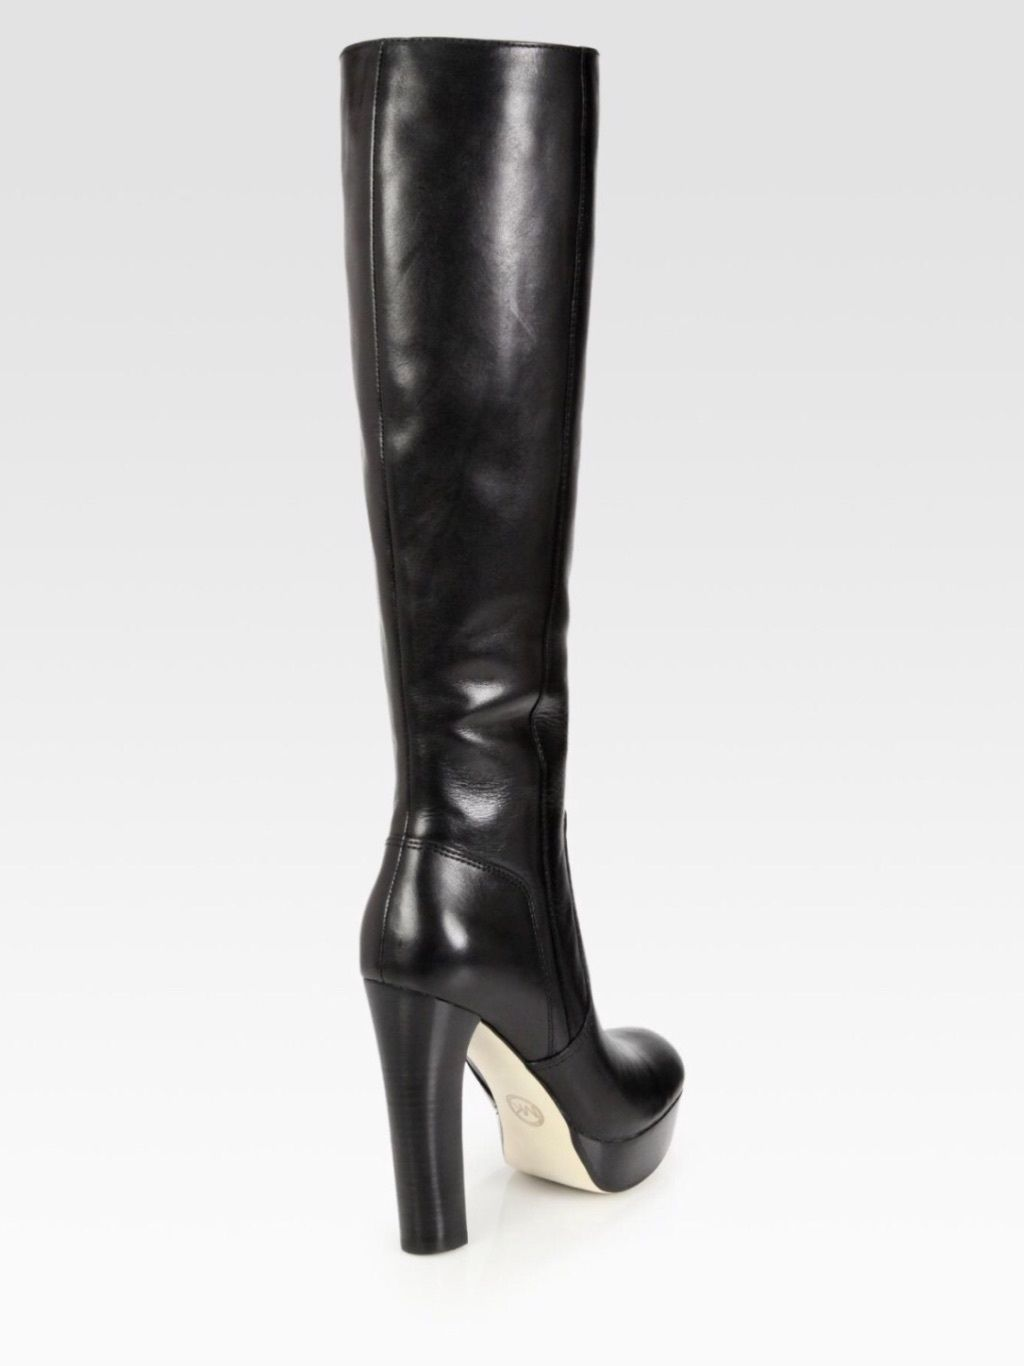 best selection of get new crazy price Michael Kors Black Lesly High Heel Knee High Tall Leather ...